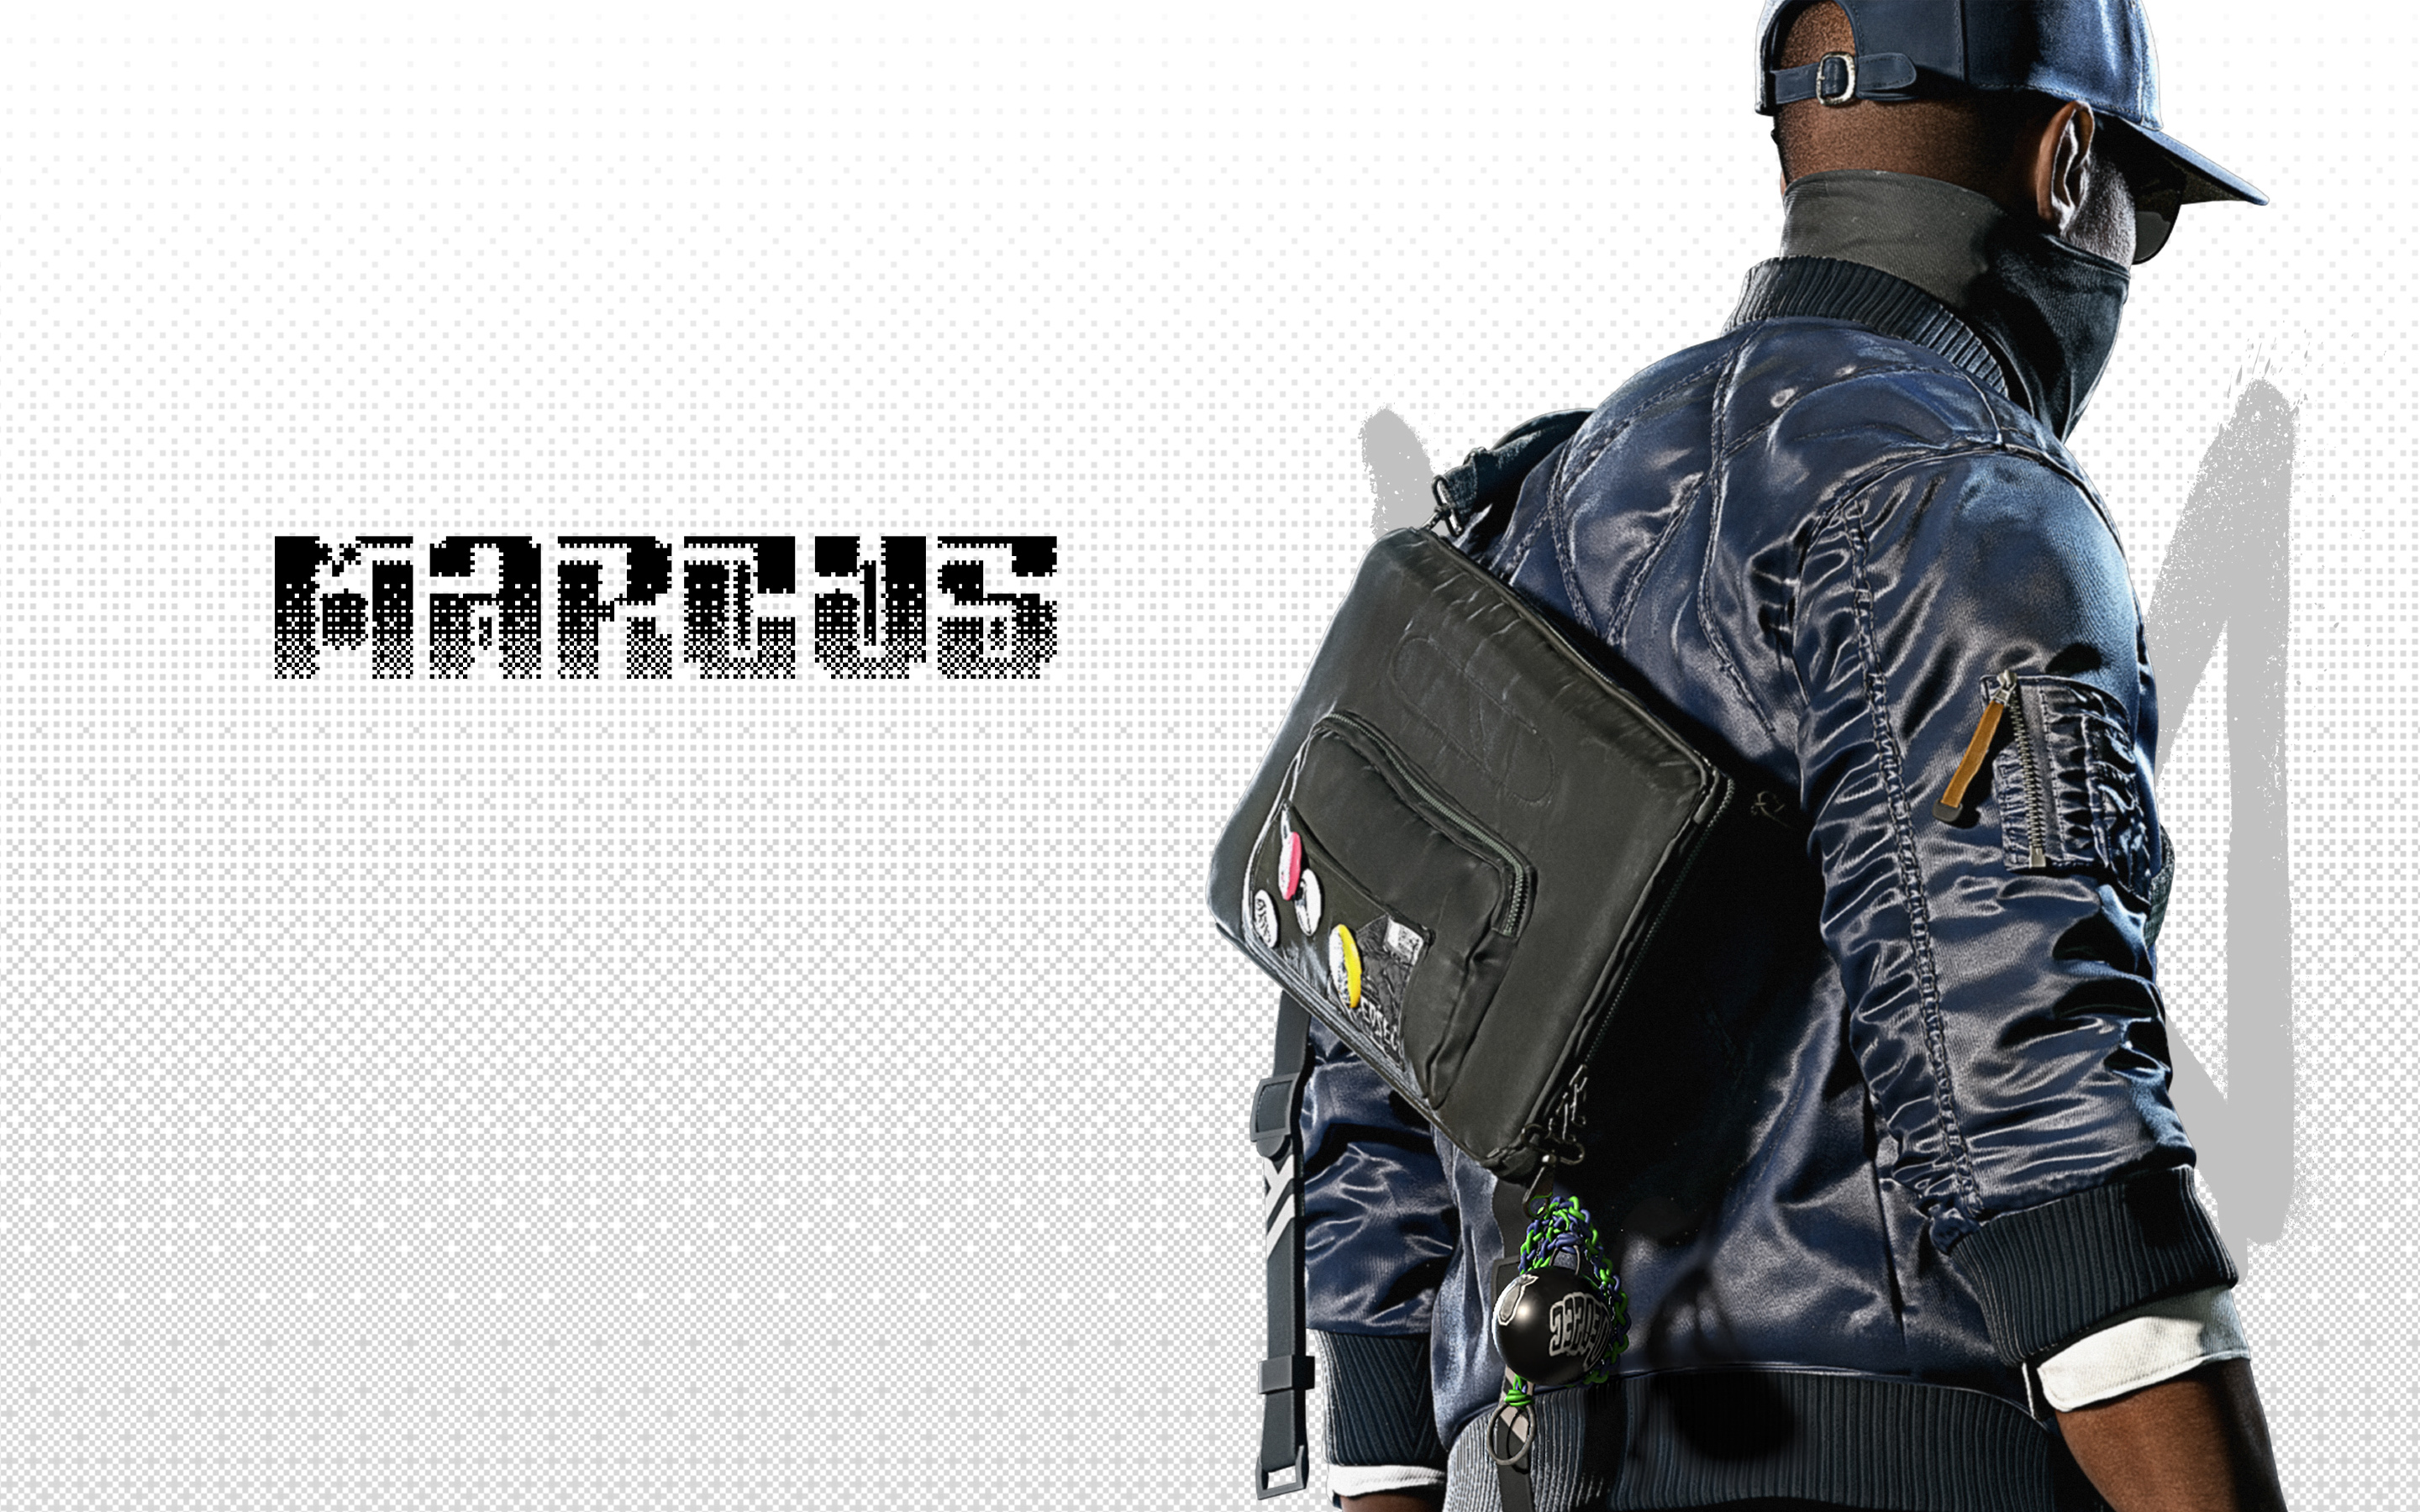 Marcus Holloway Watch Dogs 2 wallpaper